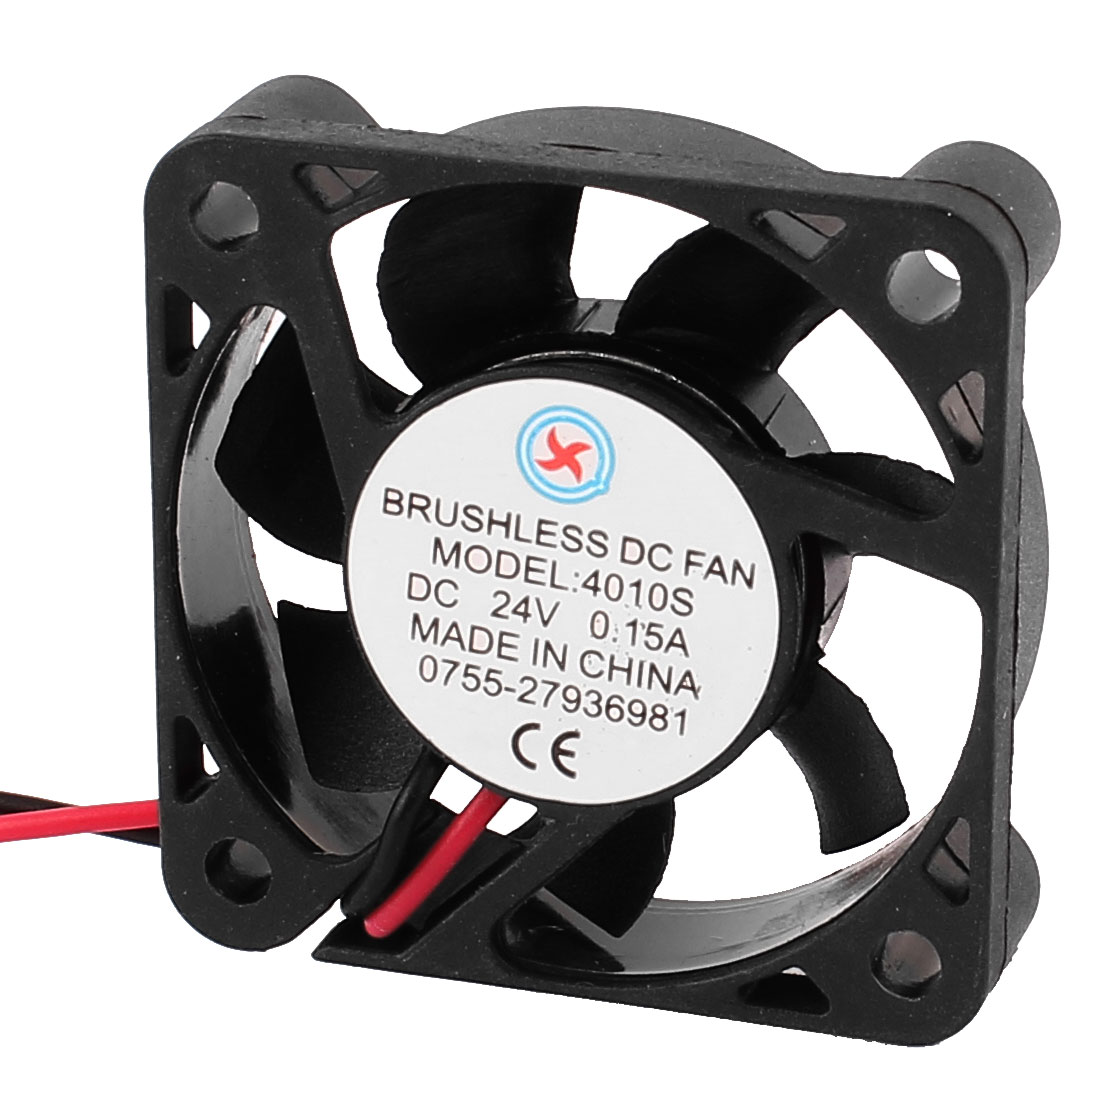 DC 24V 0.15A Black Plastic 7 Vanes PC Computer Case Cooling Fan 40mmx40mmx10mm